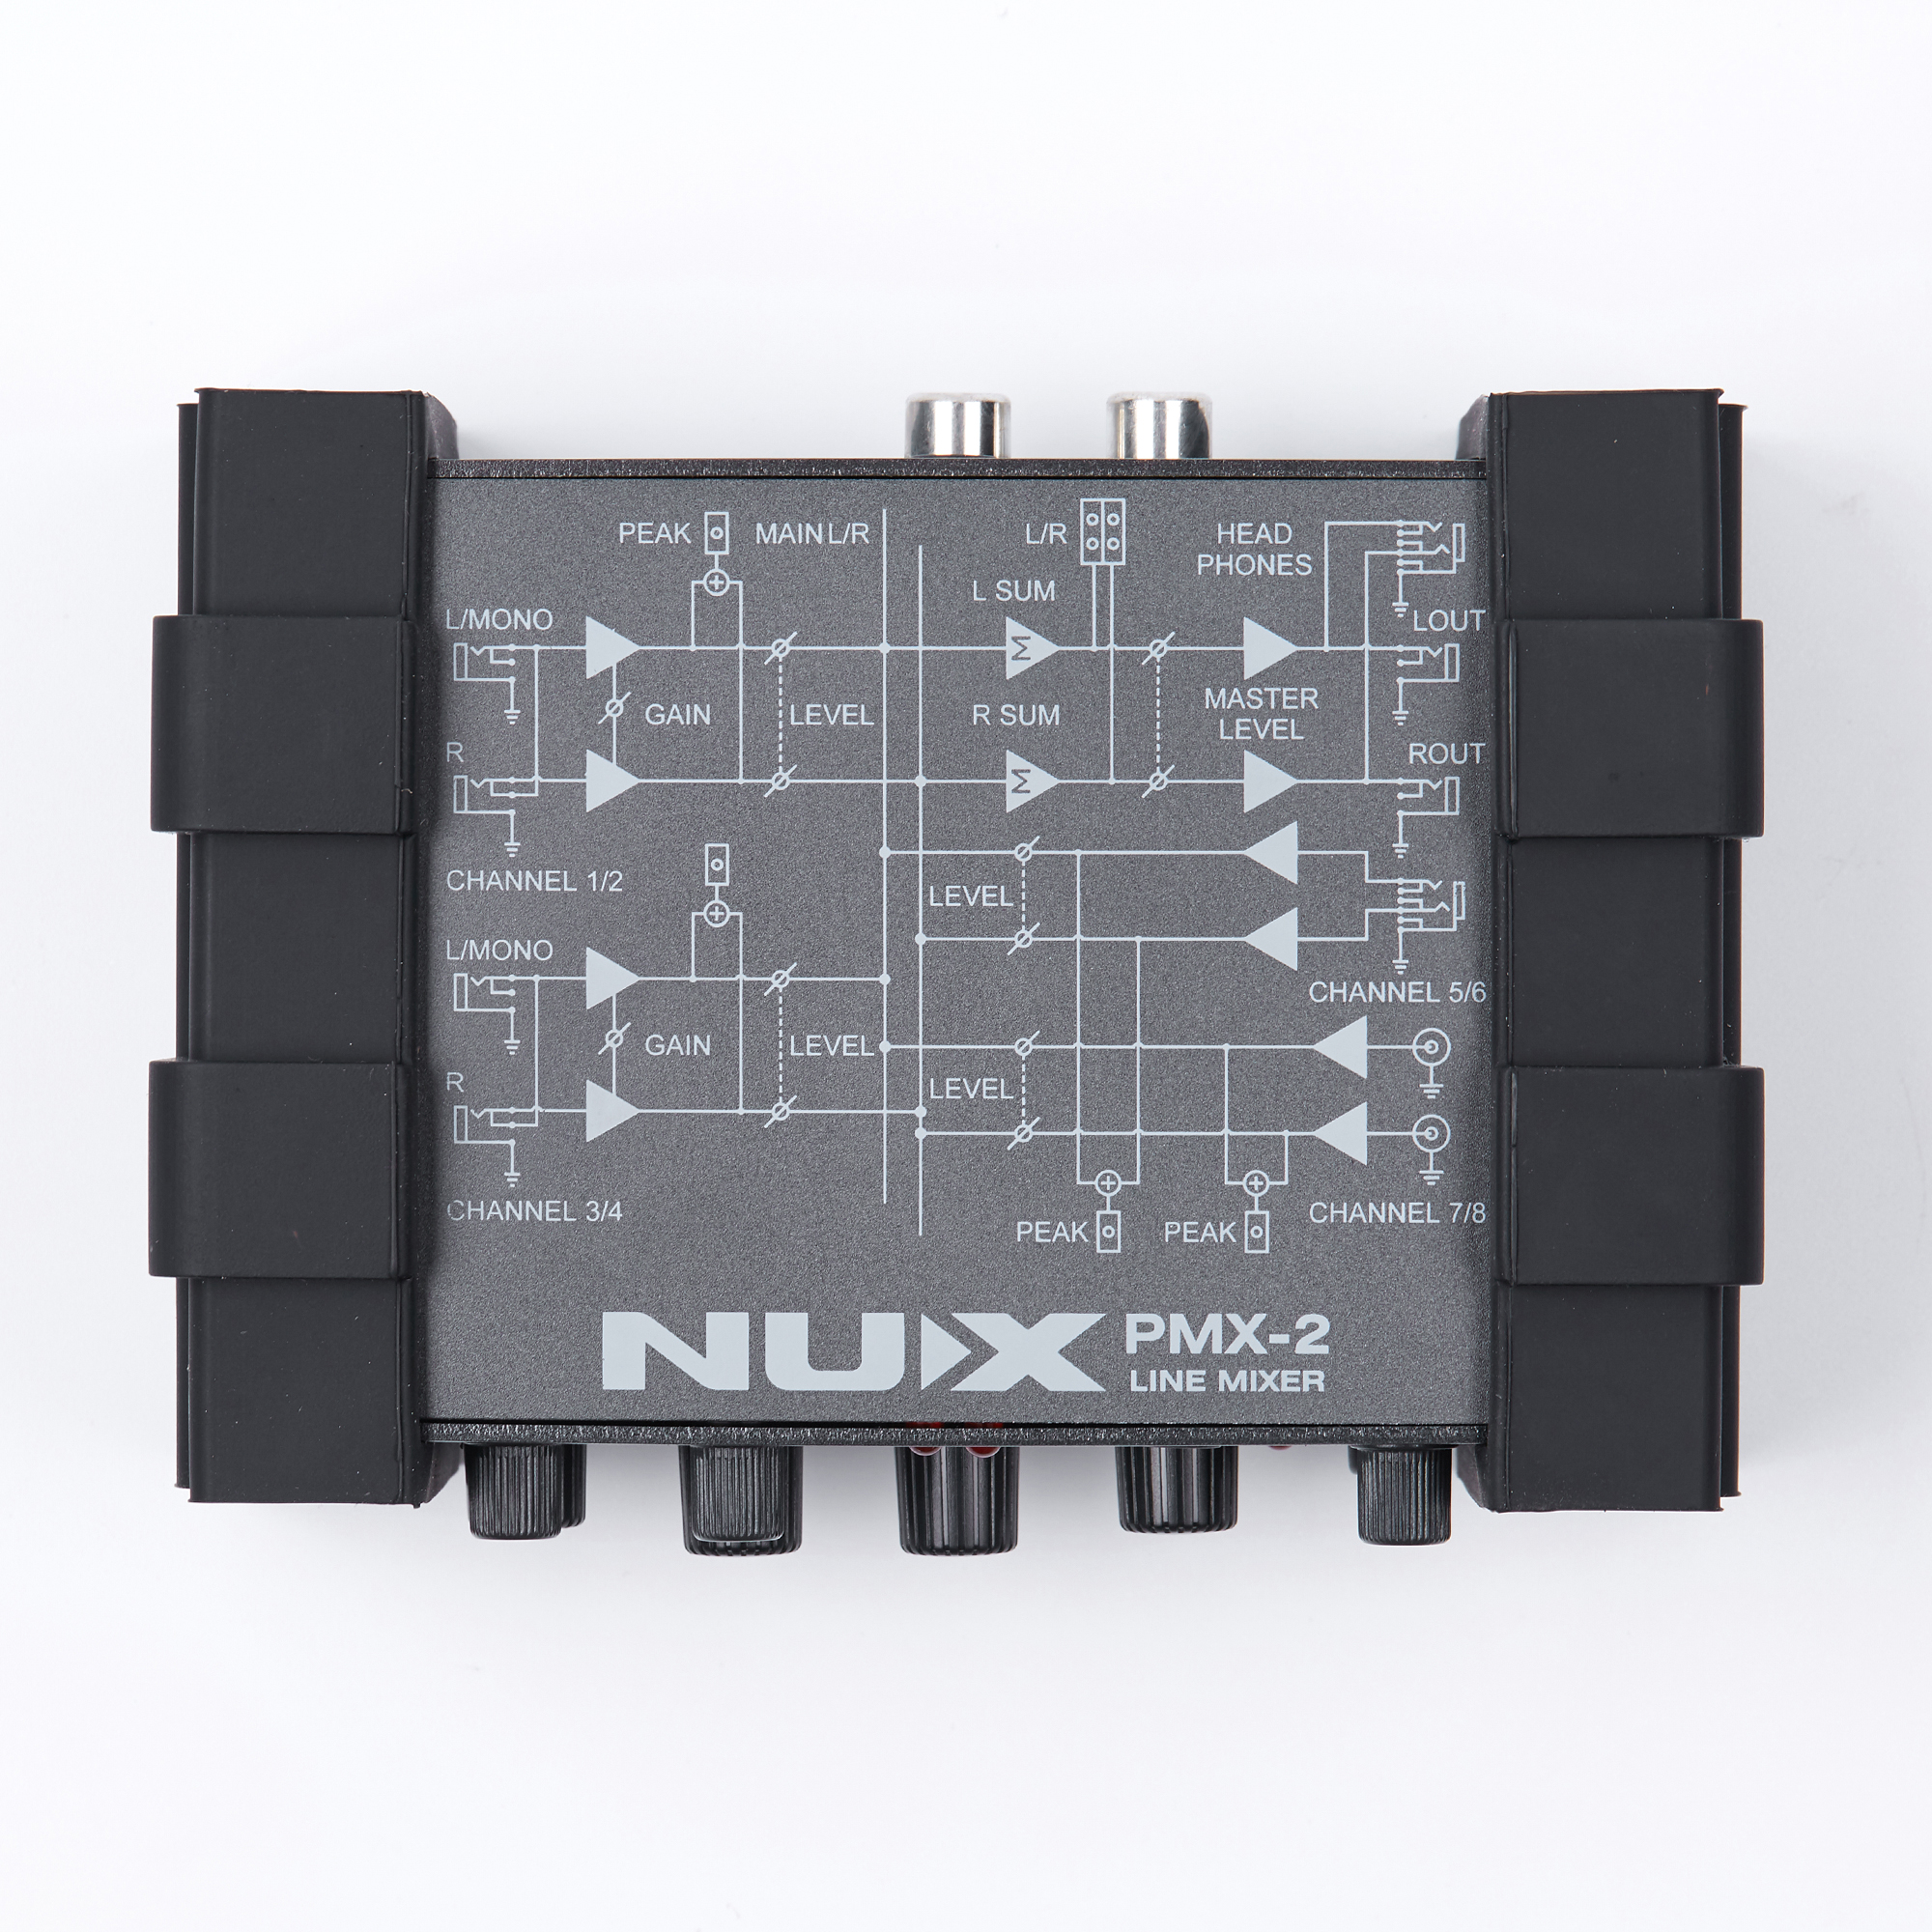 Gain Control 8 Inputs and 2 Outputs NUX PMX-2 Multi-Channel Mini Mixer 30 Musical Instruments Accessories for Guitar Bass Player high quality b20 cymbals dragon 16 o zone china